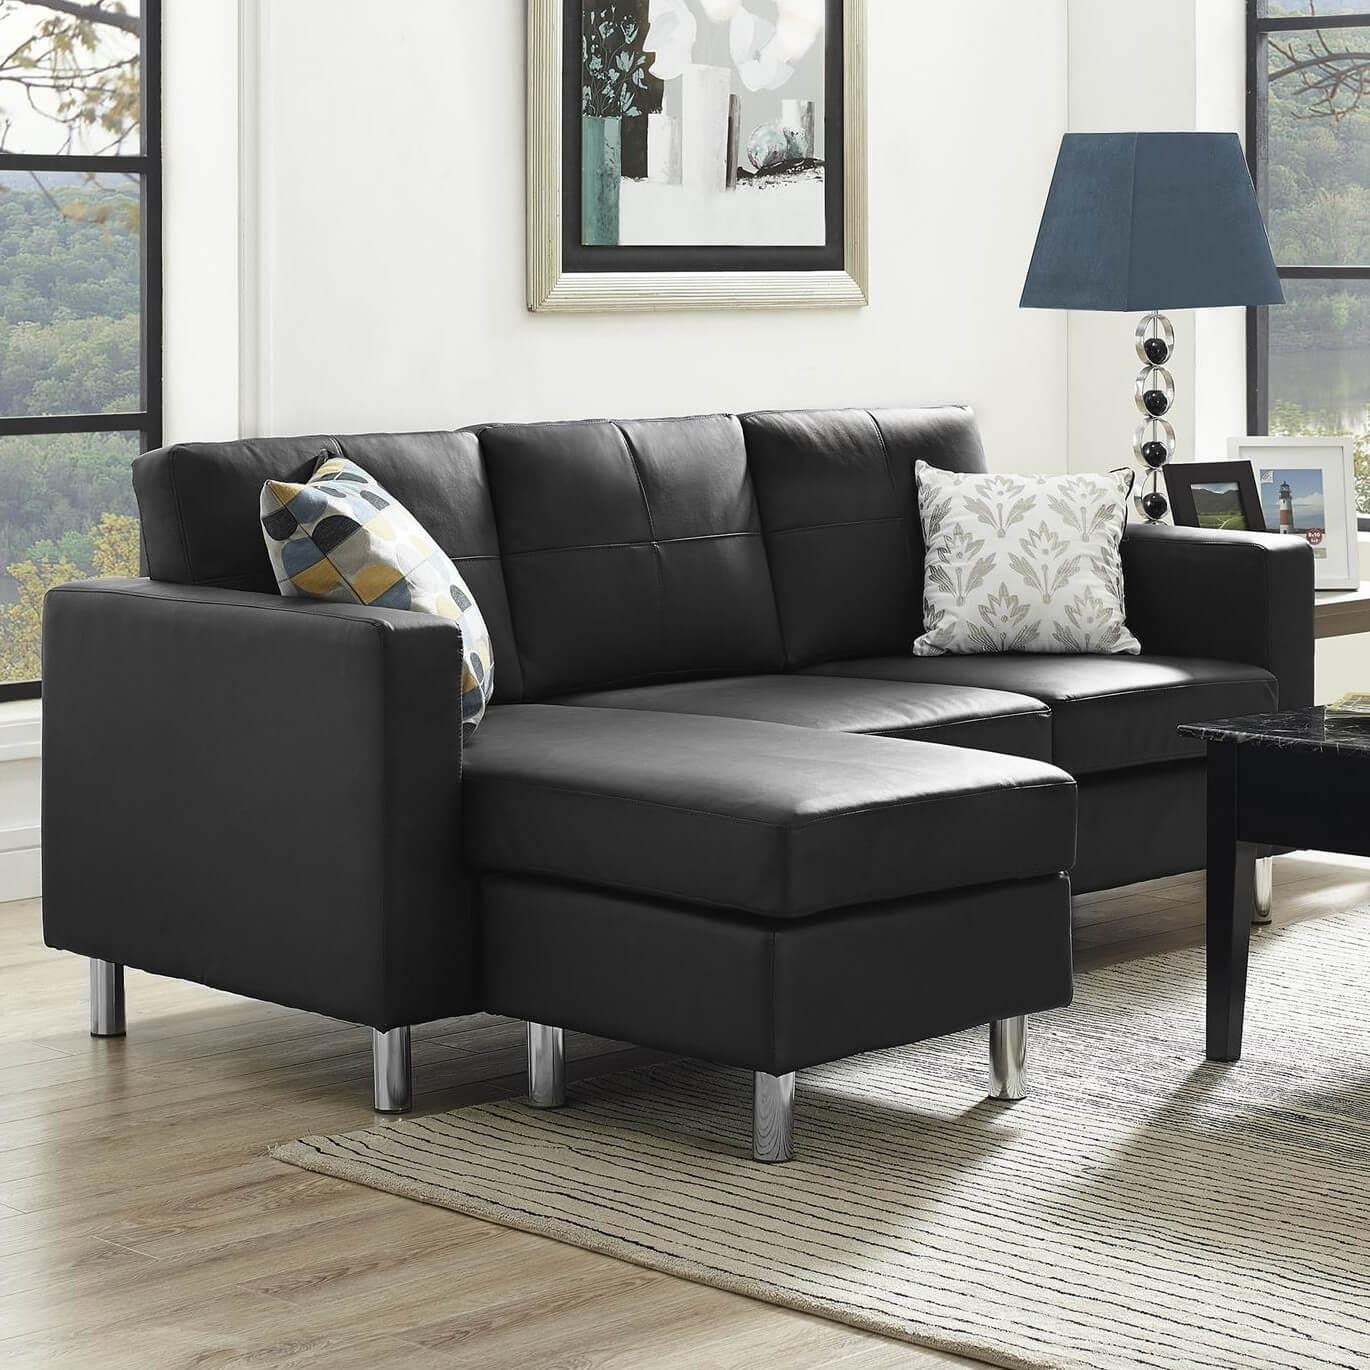 20 Inspirations Modern Sectional Sofas For Small Spaces